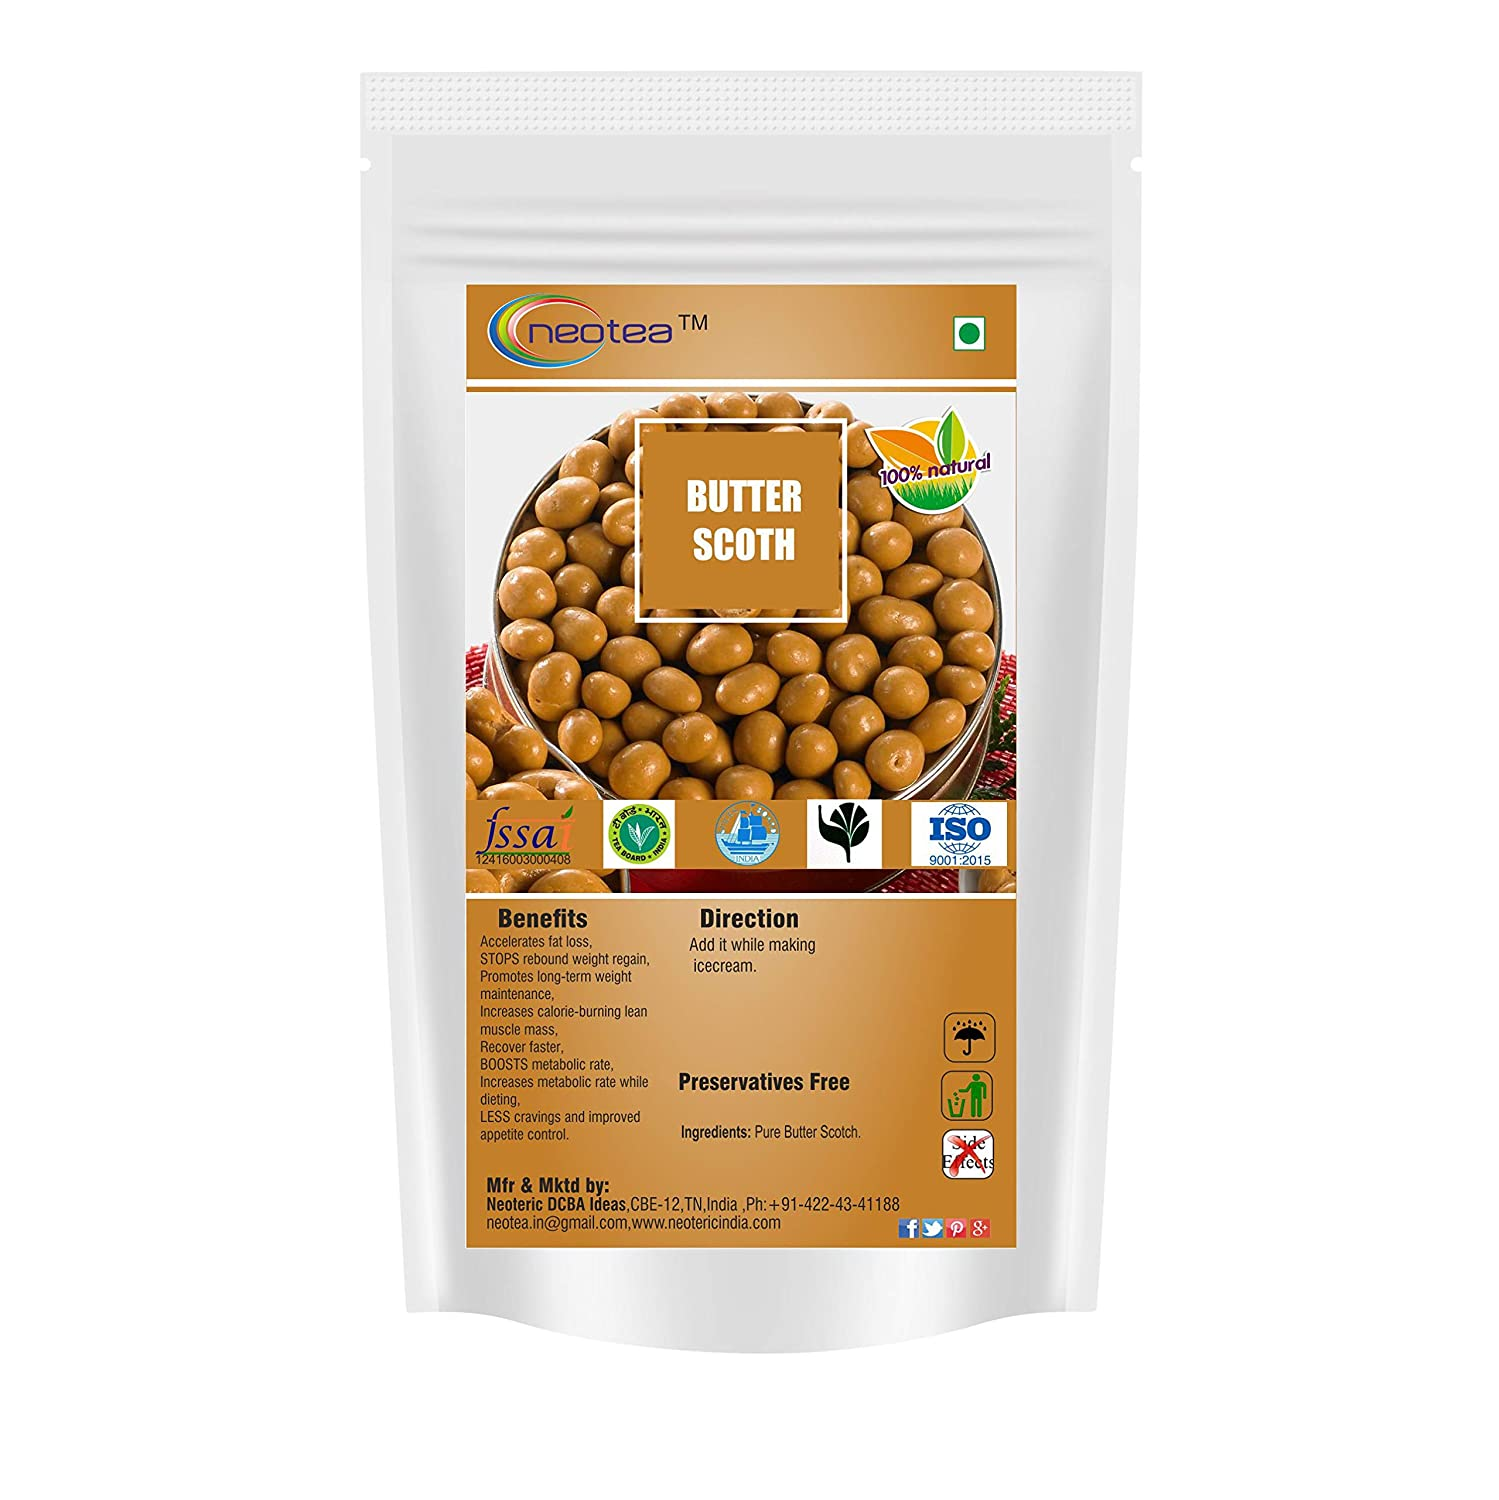 Neotea Recommendation Butter 250g Mail order Scotch